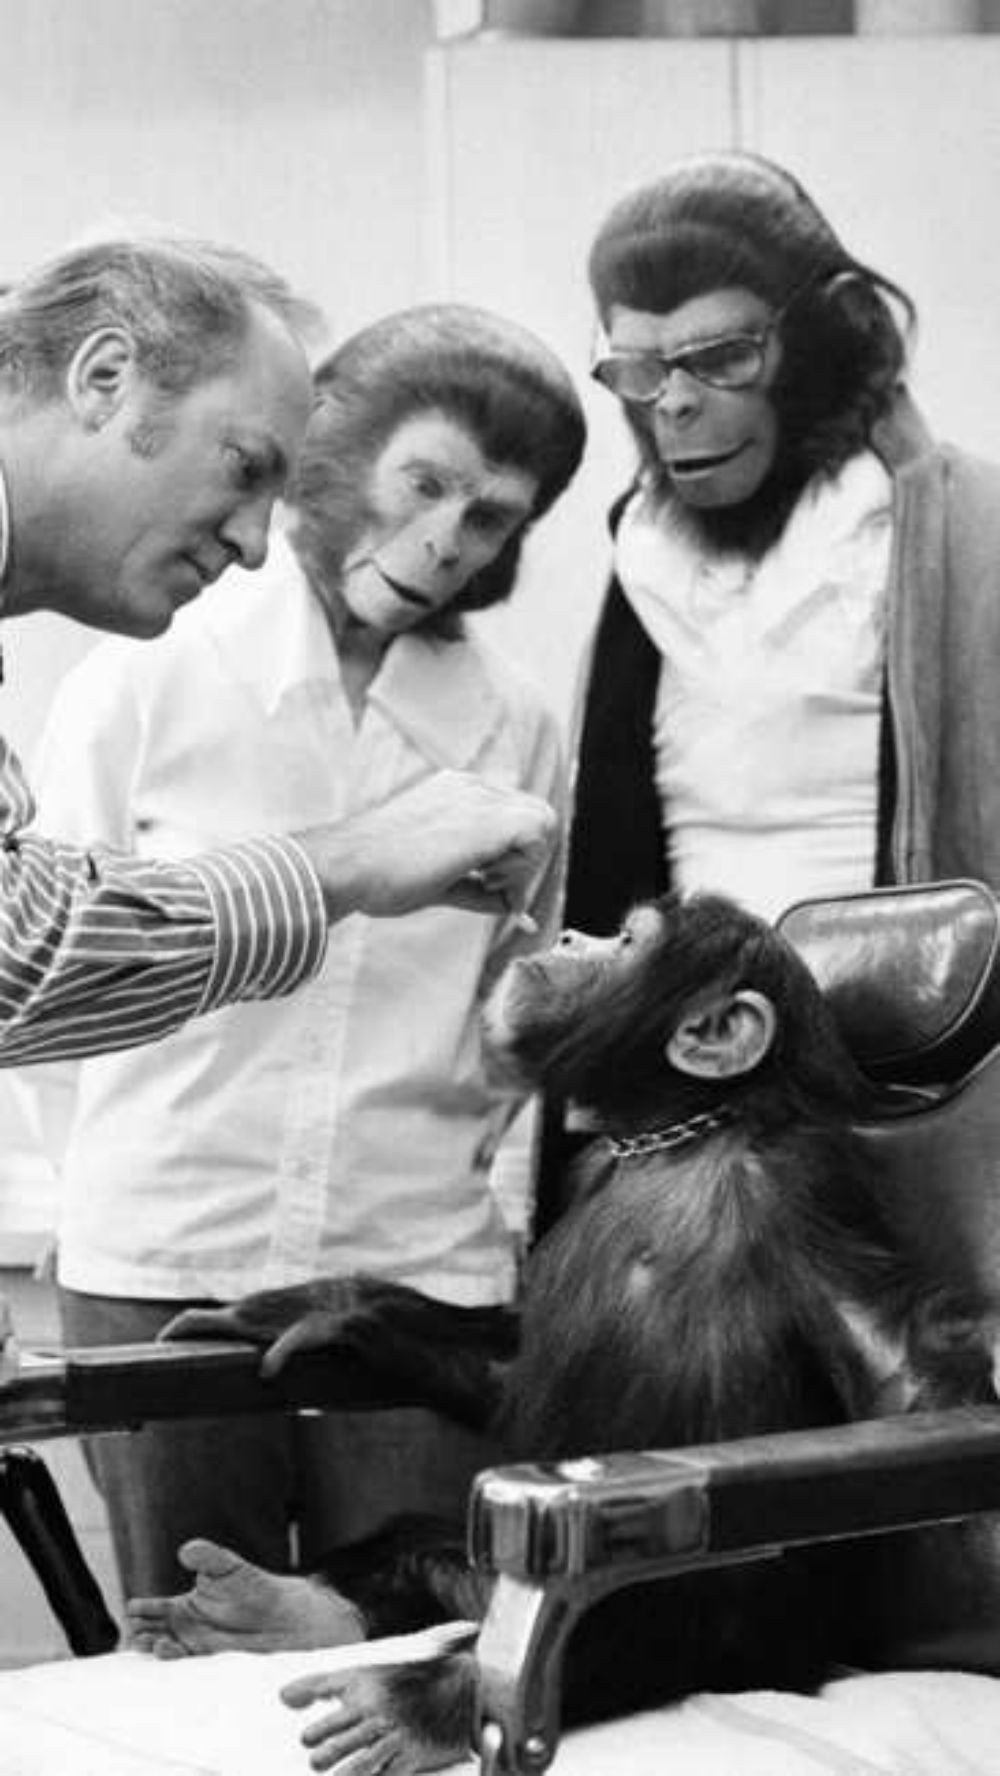 chimpanzees-kelly-prepare-for-the-shooting-of-the-film-escape-from-the-planet-of-the-apes-1971